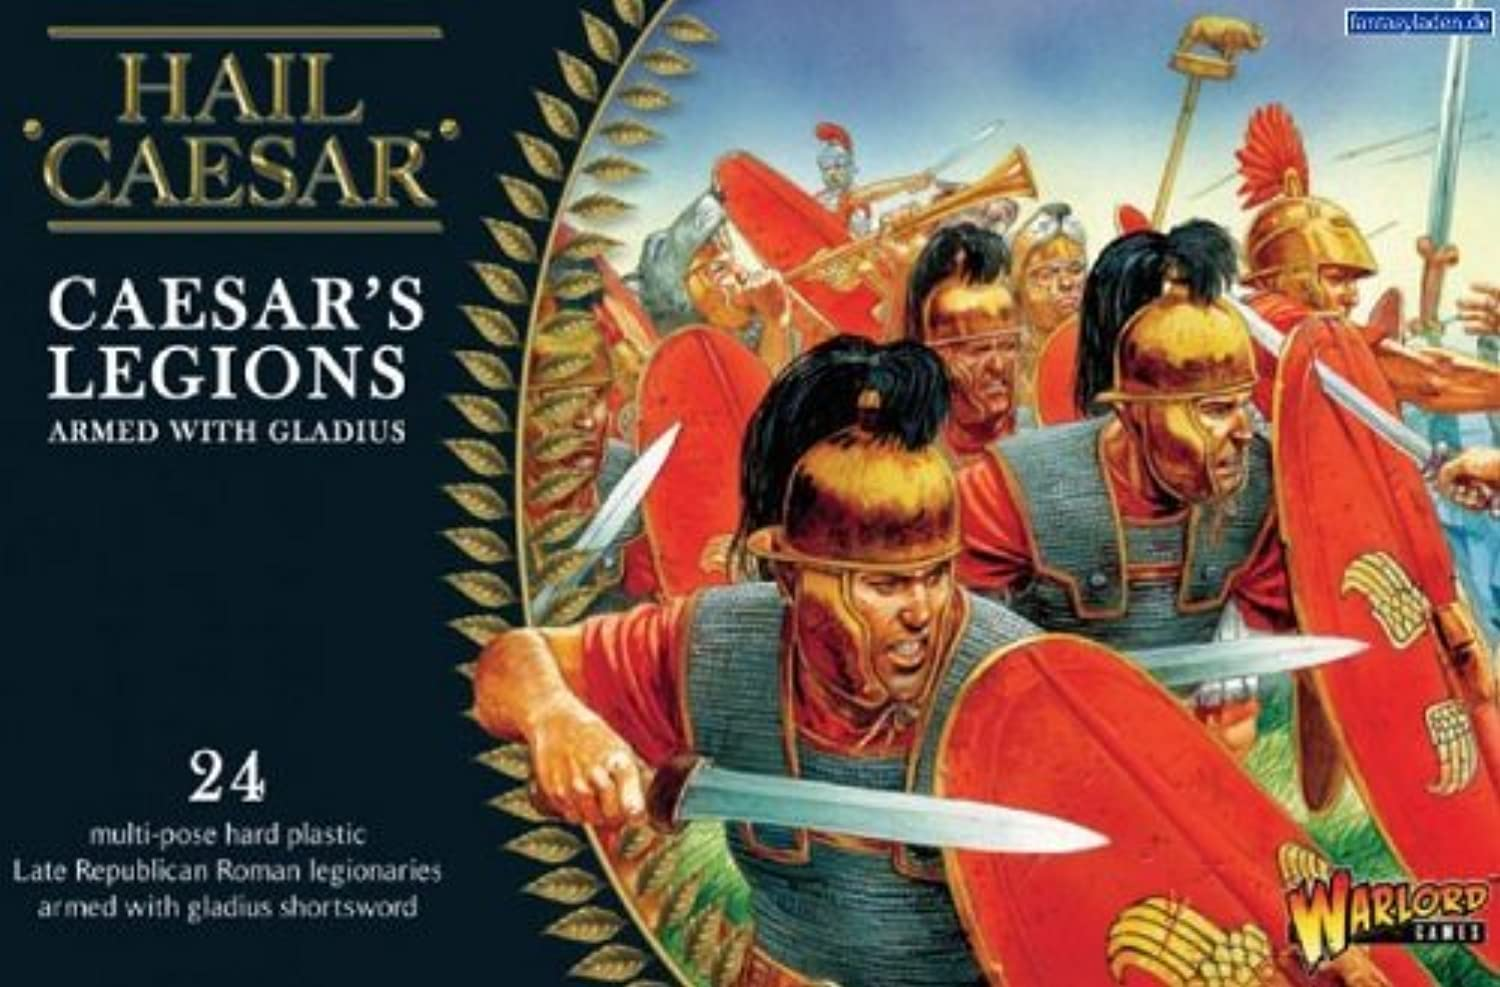 Pack Of 24 Caesarian Rouomos With Gladius Miniatures by Warlord giocos